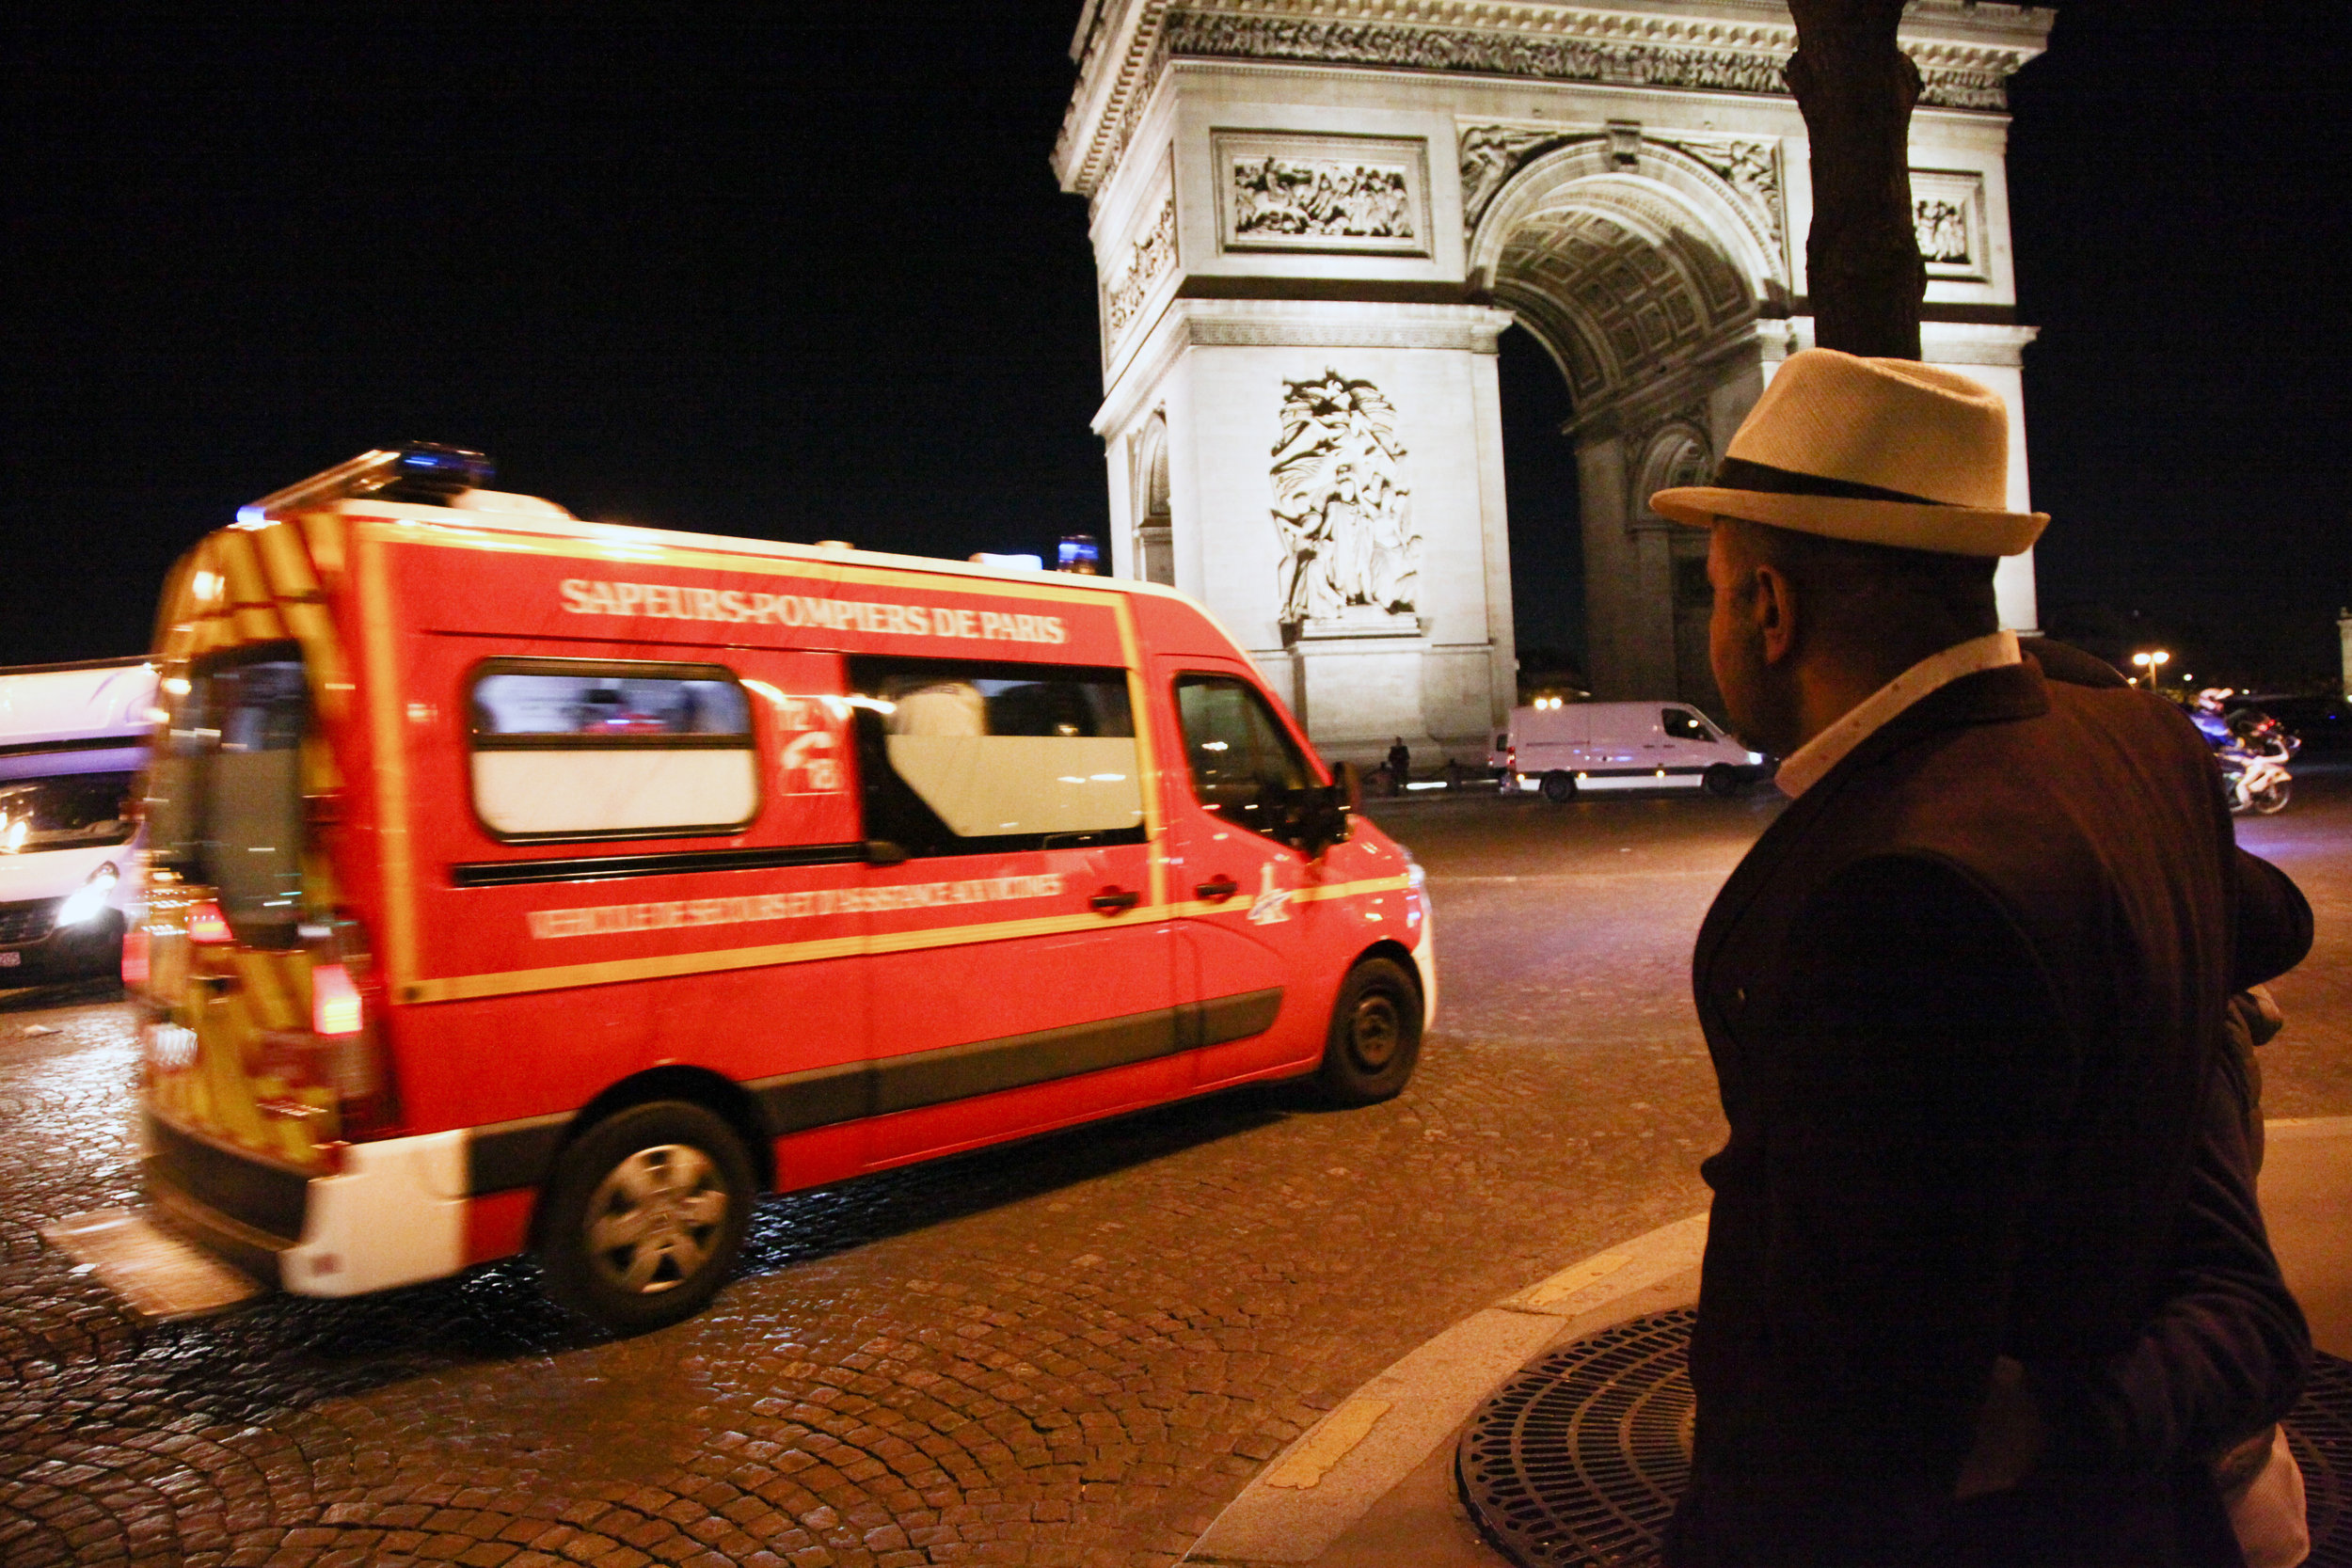 06-20170420-ATTAQUE-CHAMPS-ELYSEES-PARIS©Augustin-Le_Gall-Haytham-Pictures-IMG_1266.jpg